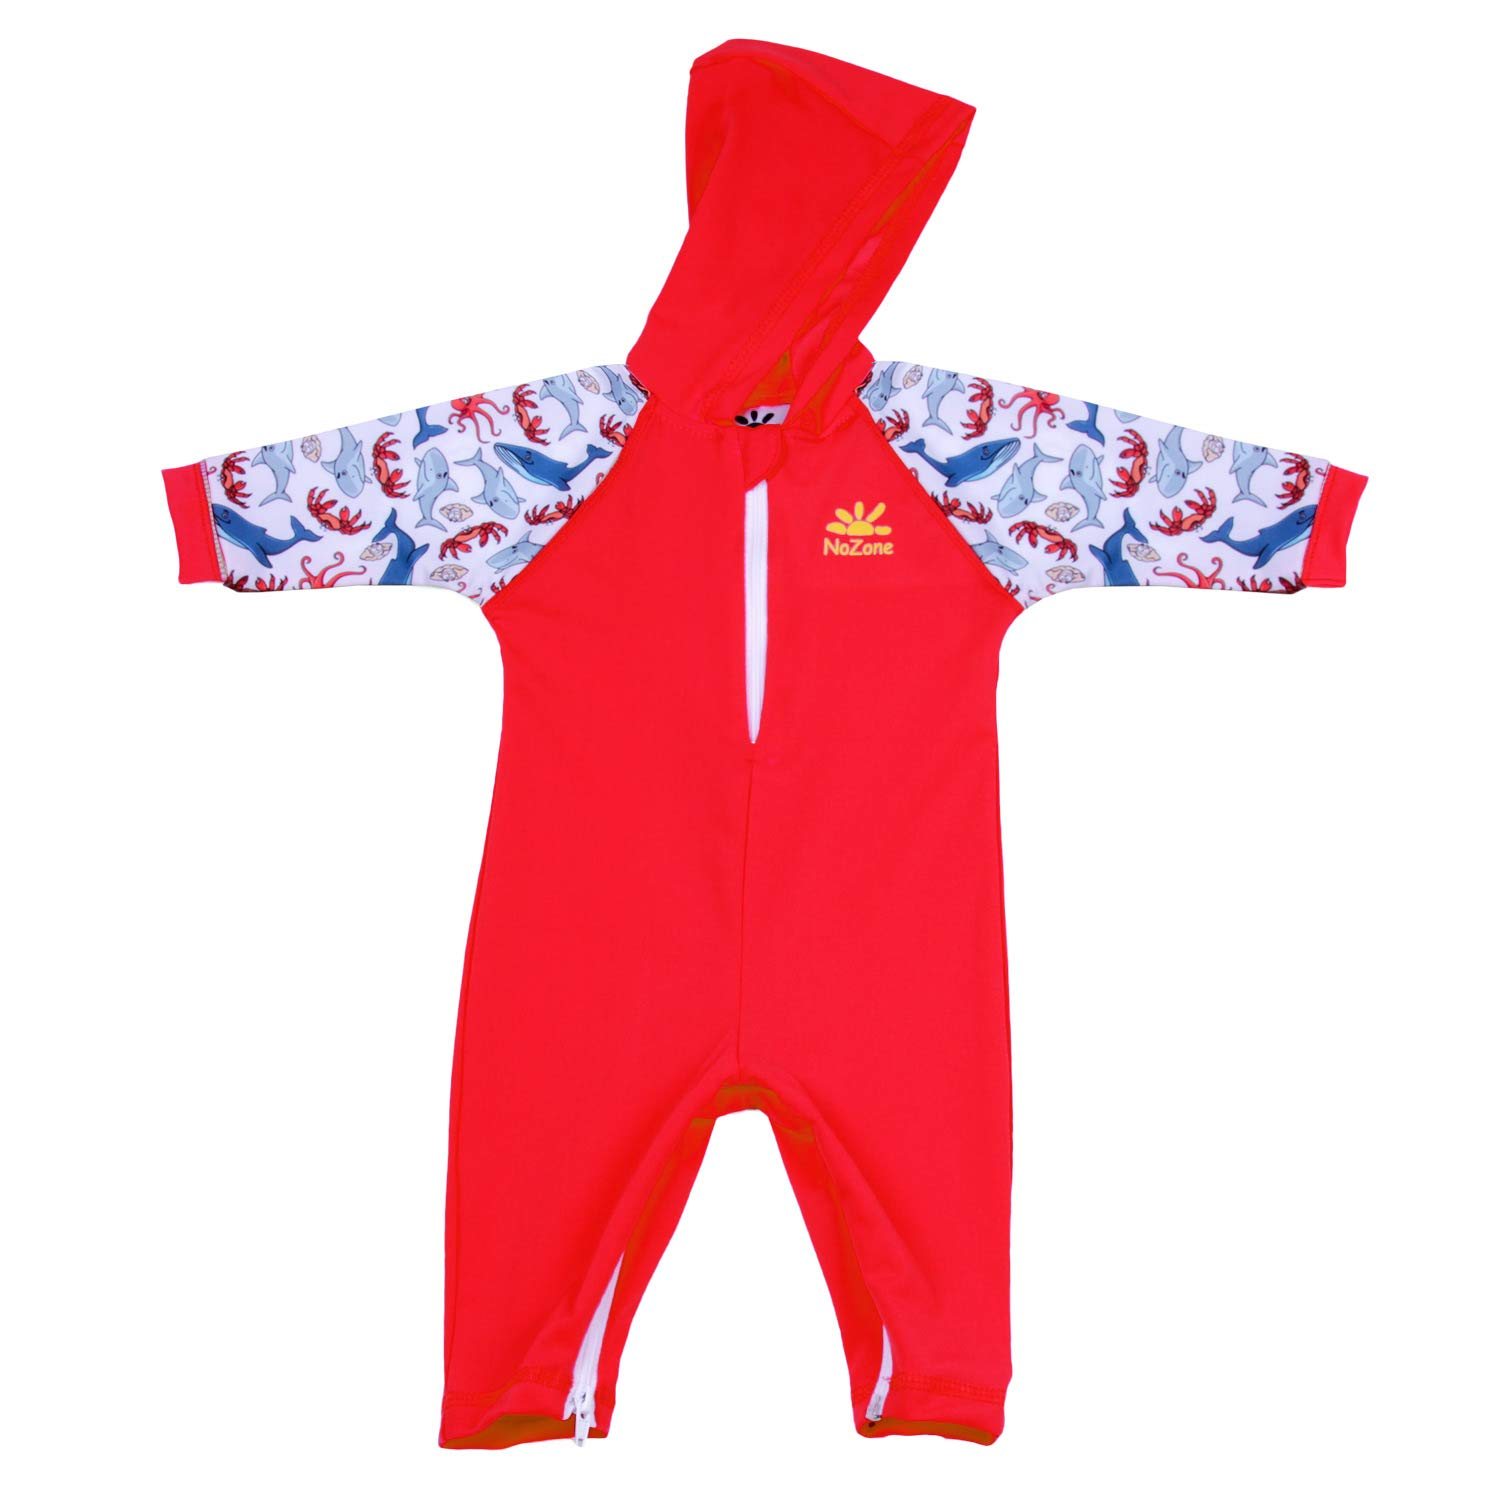 Nozone Kailua Hooded Baby Sun Protective Swimsuit in Red/Salty, 12-18 Months 2030RDPTL18